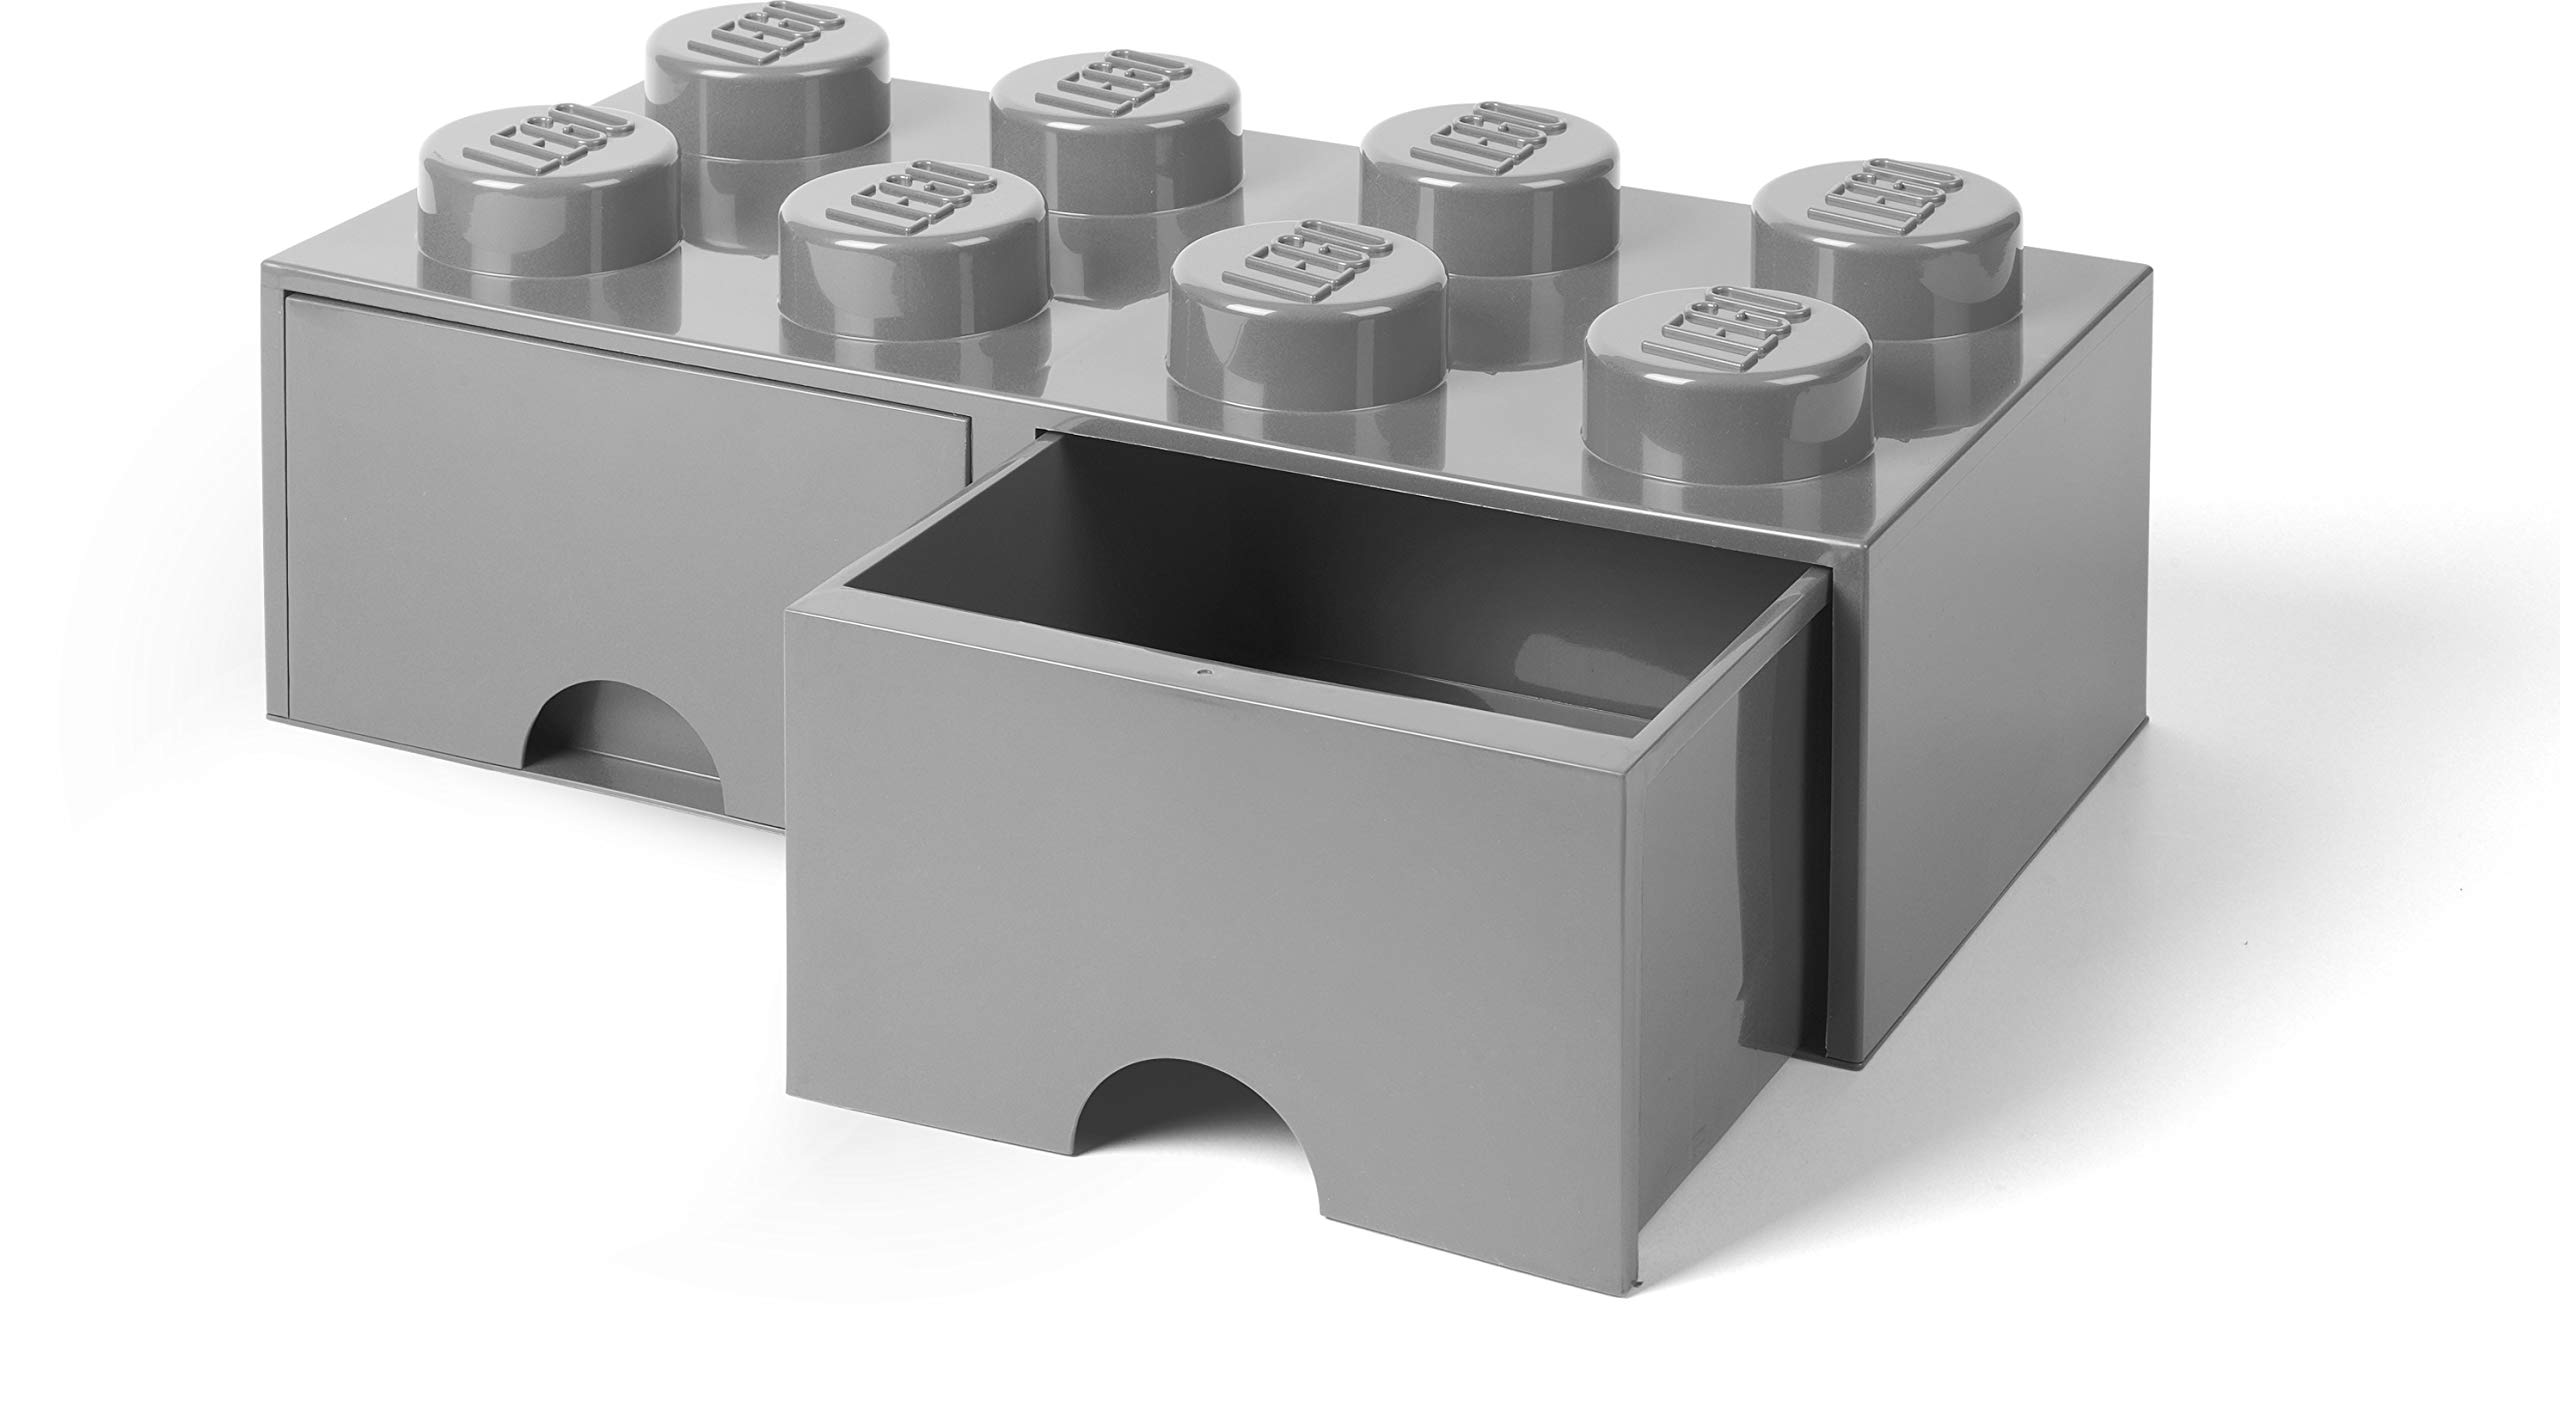 LEGO Brick Drawer, 8 Knobs, 2 Drawers, Stackable Storage Box, Medium Stone Grey by LEGO